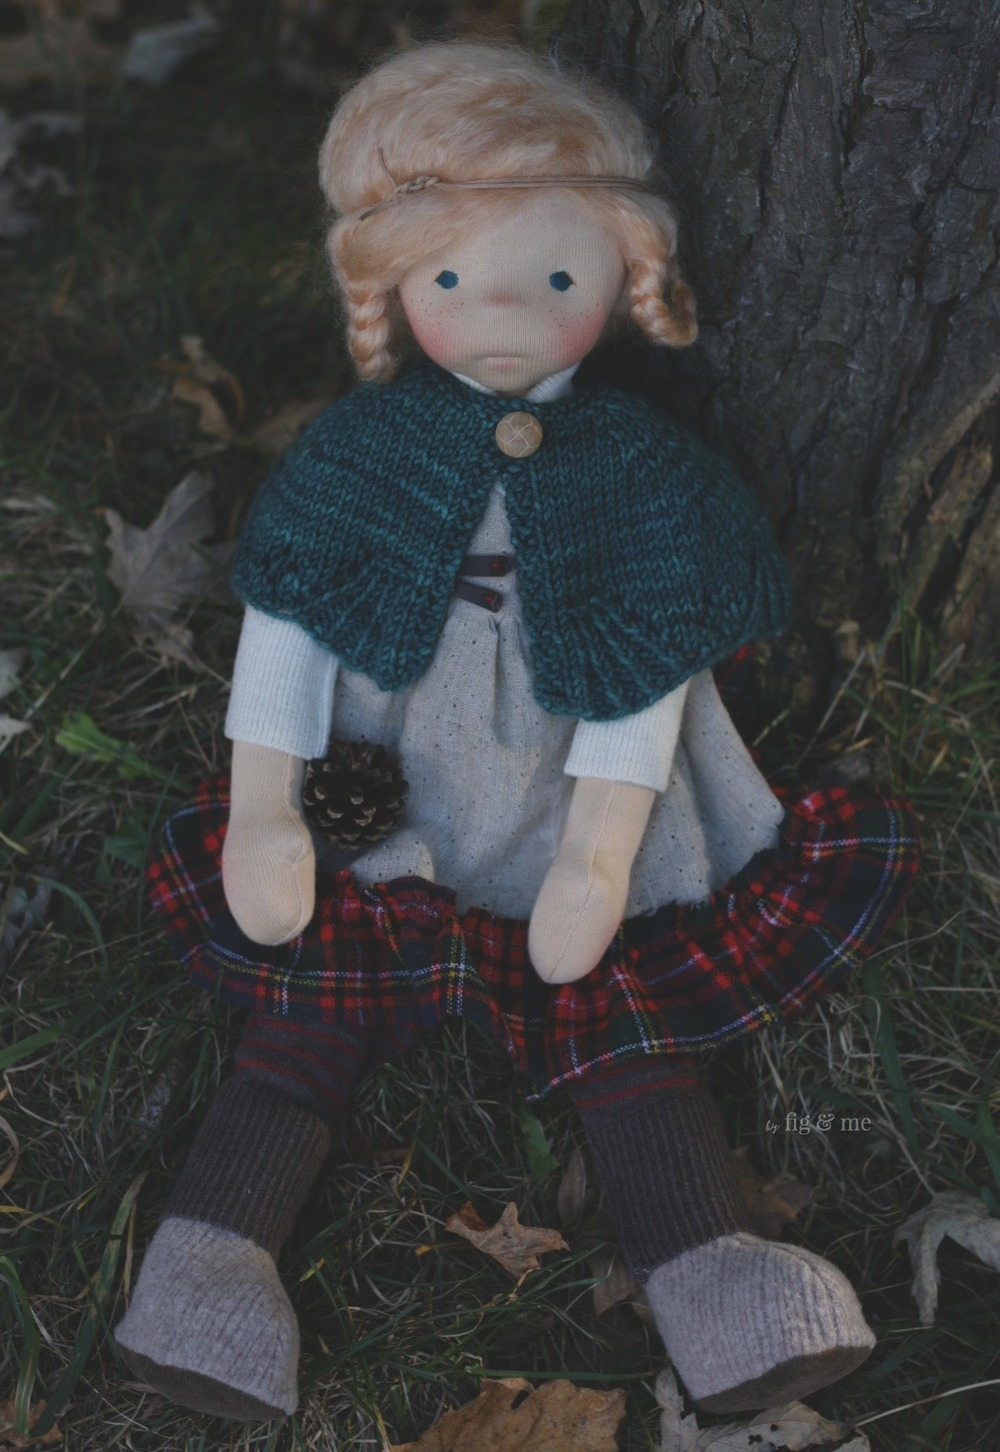 Iona, a natural fiber art doll ready for play. By Fig and me.